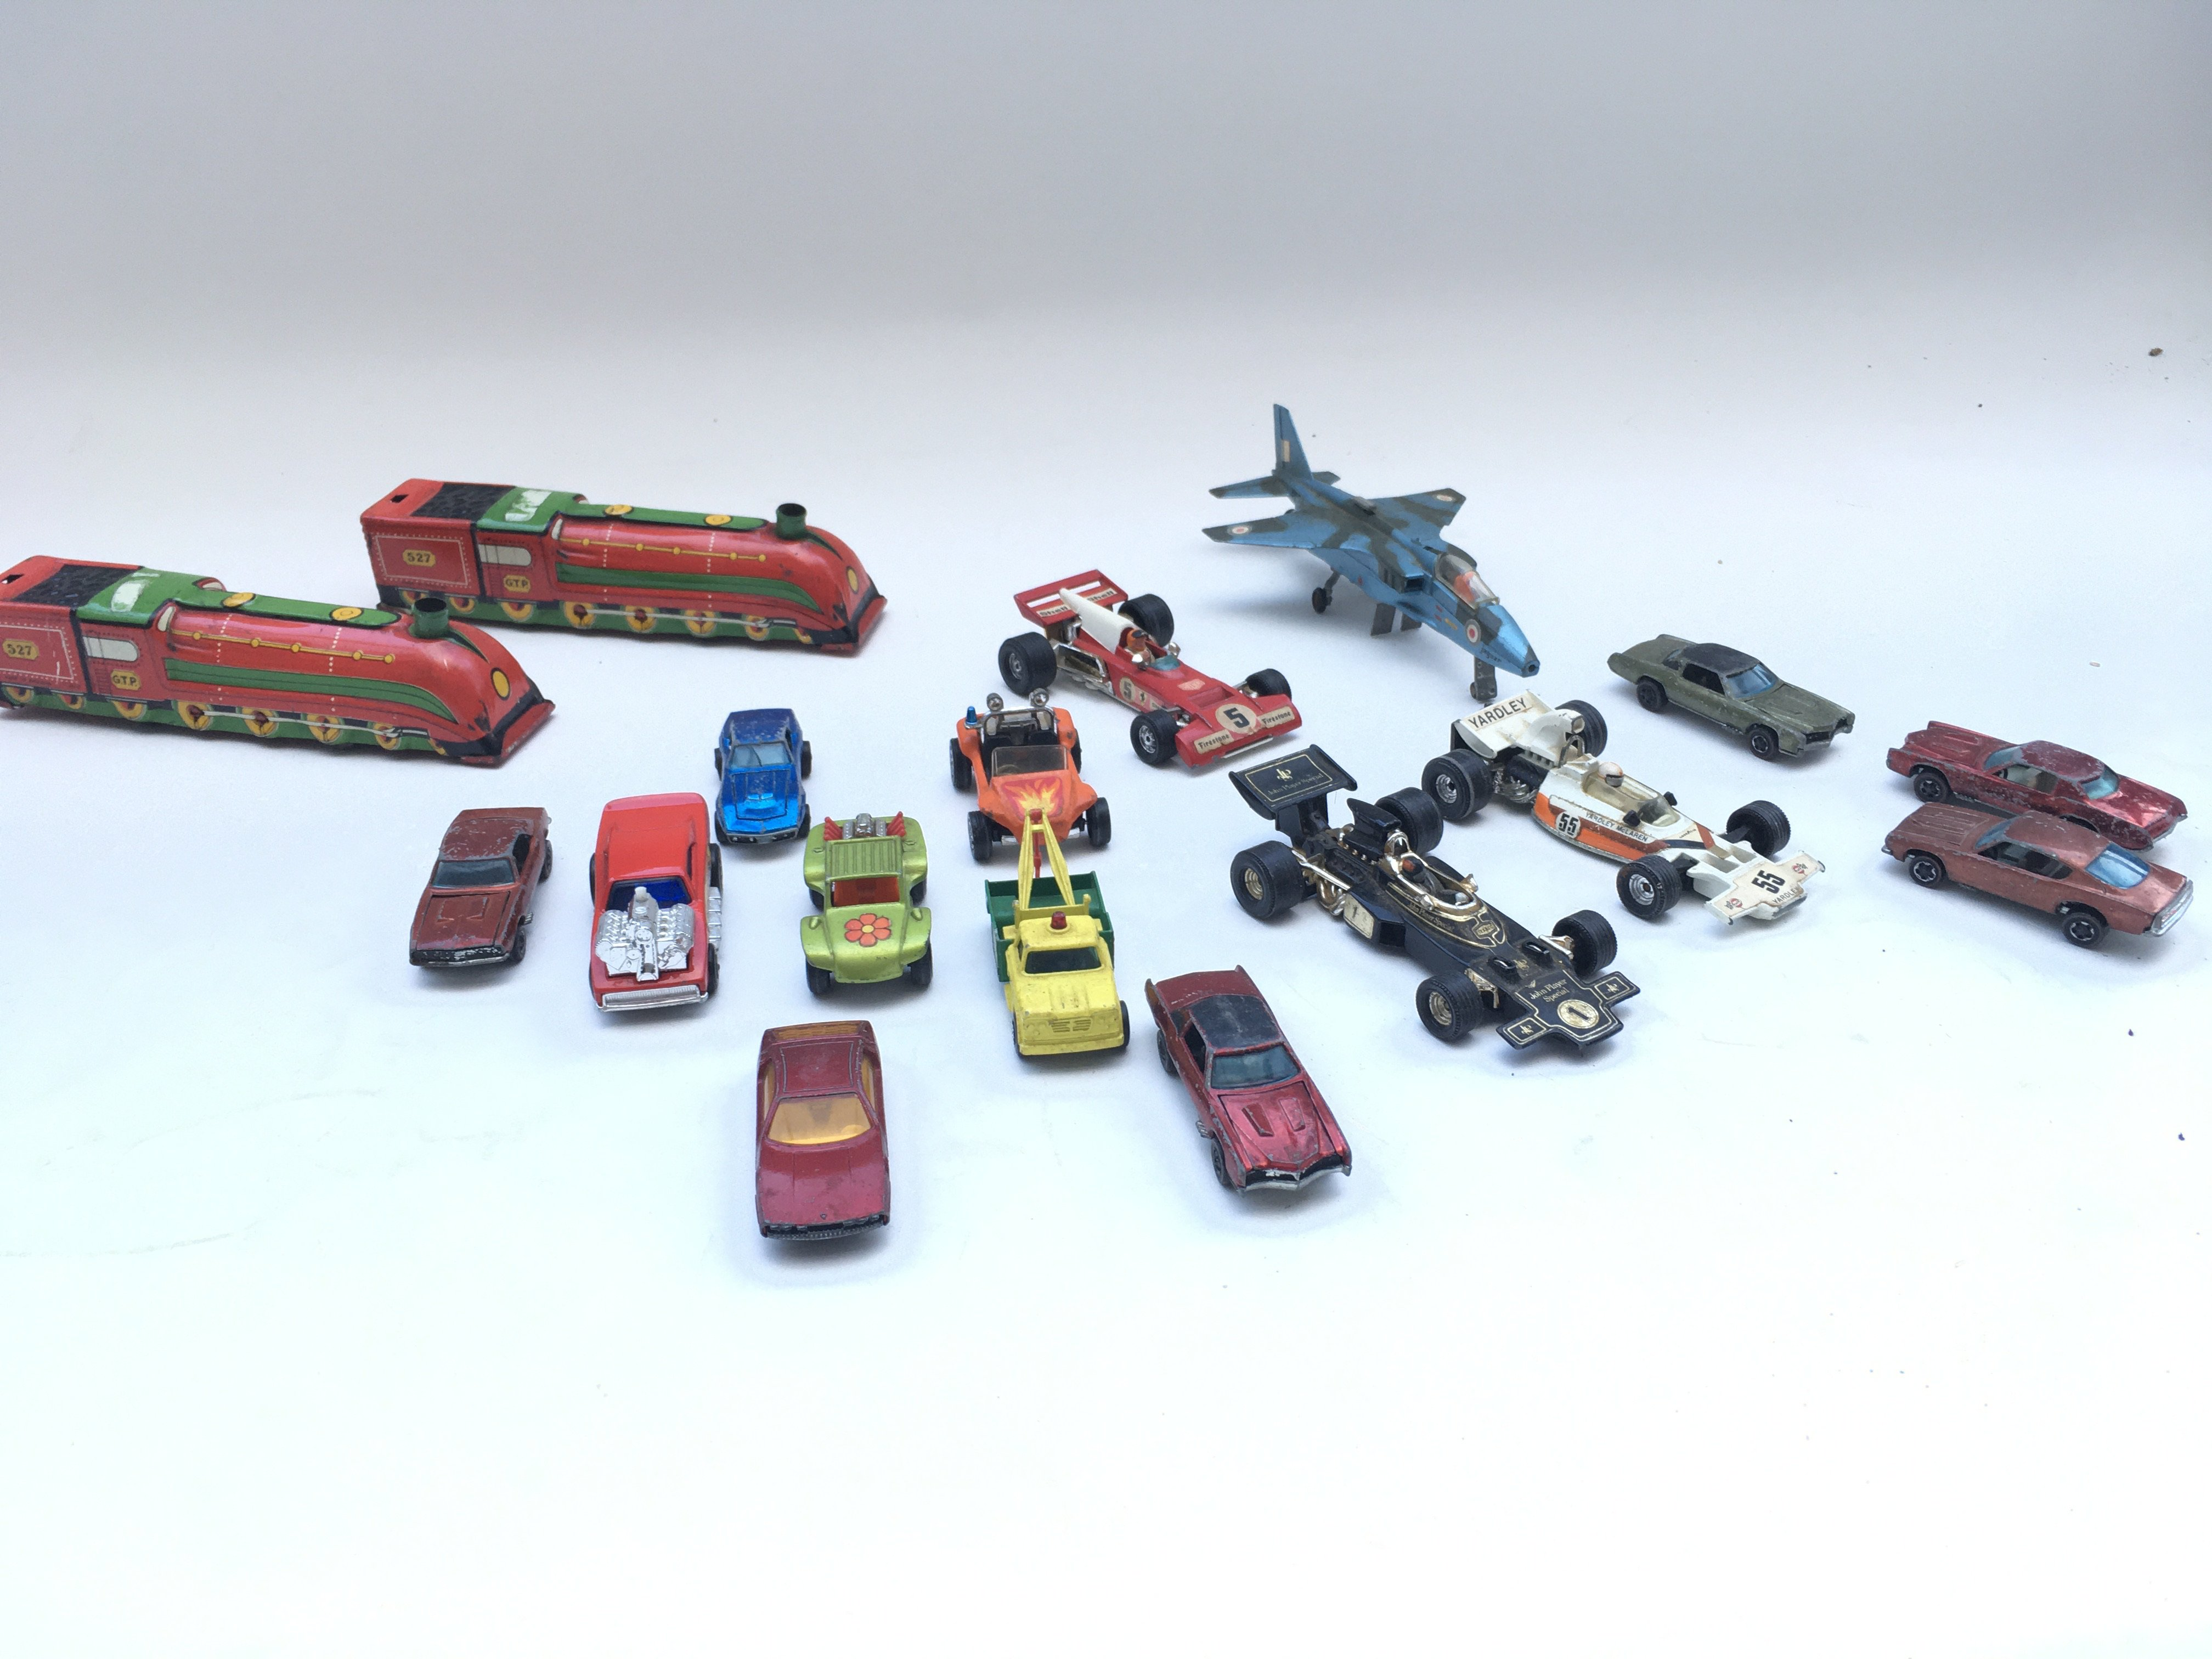 Pair of tin trains. Collection of cars including Corgi and hot wheels.